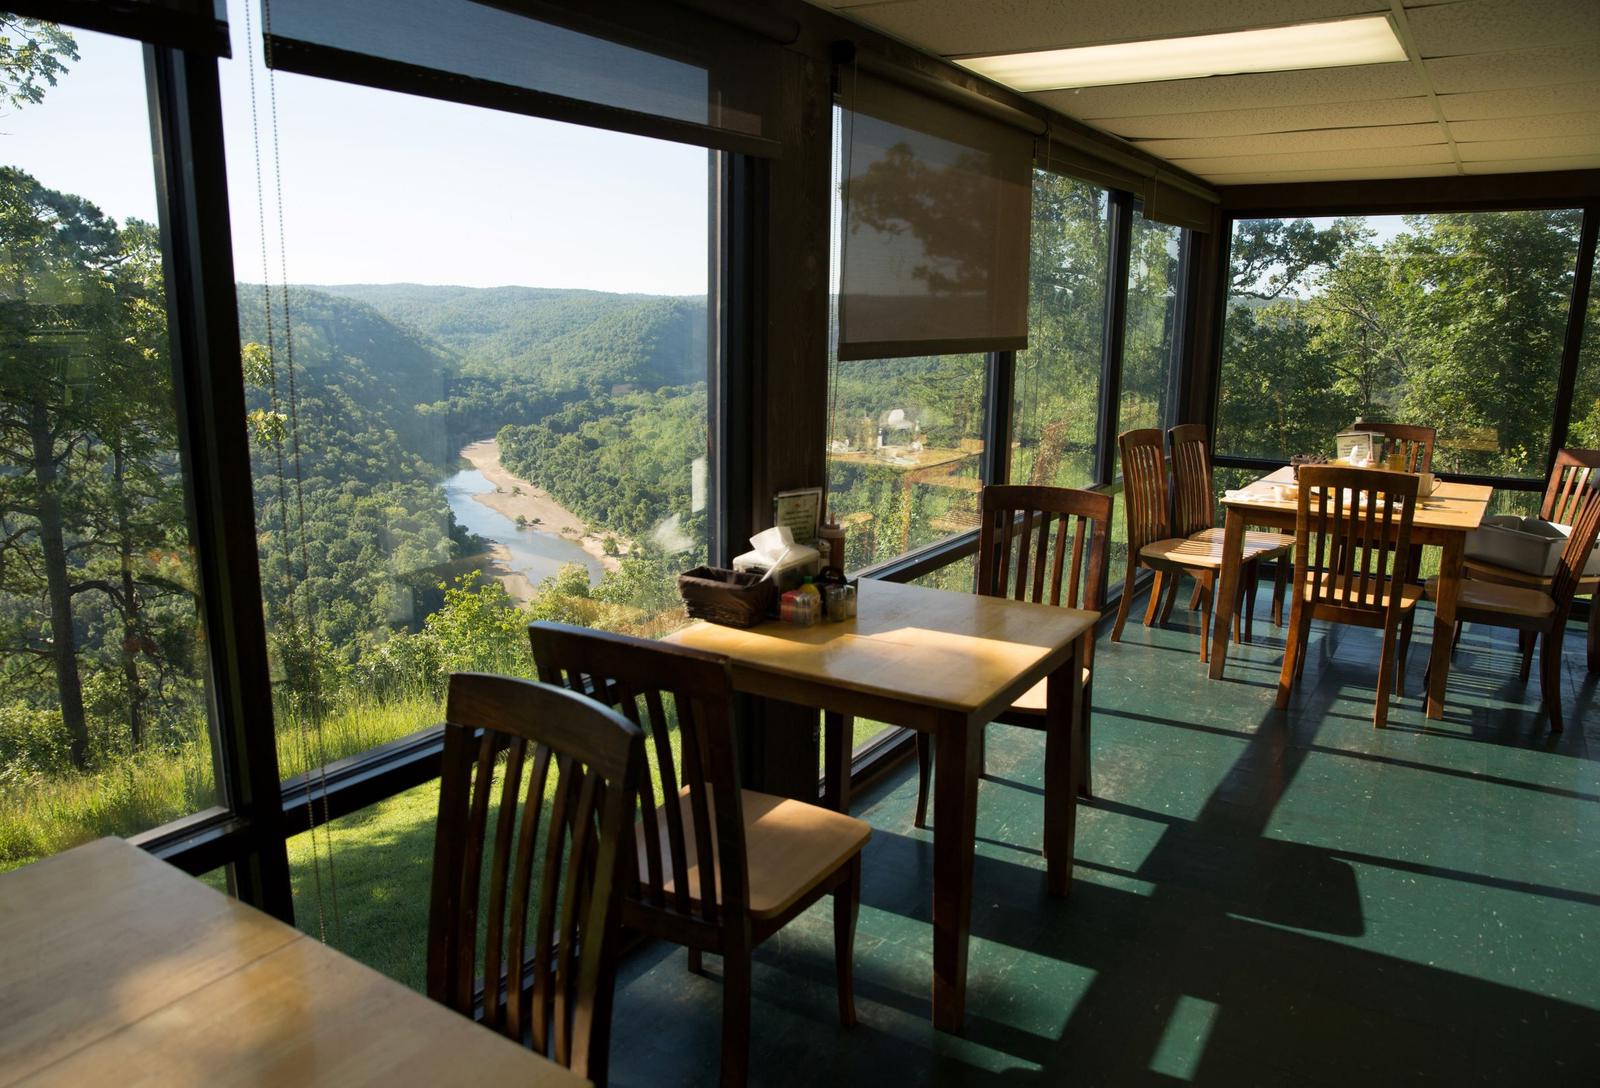 View from Buffalo Point RestaurantA view overlooking the Buffalo River as seen through the window at the Buffalo Point Restaurant.